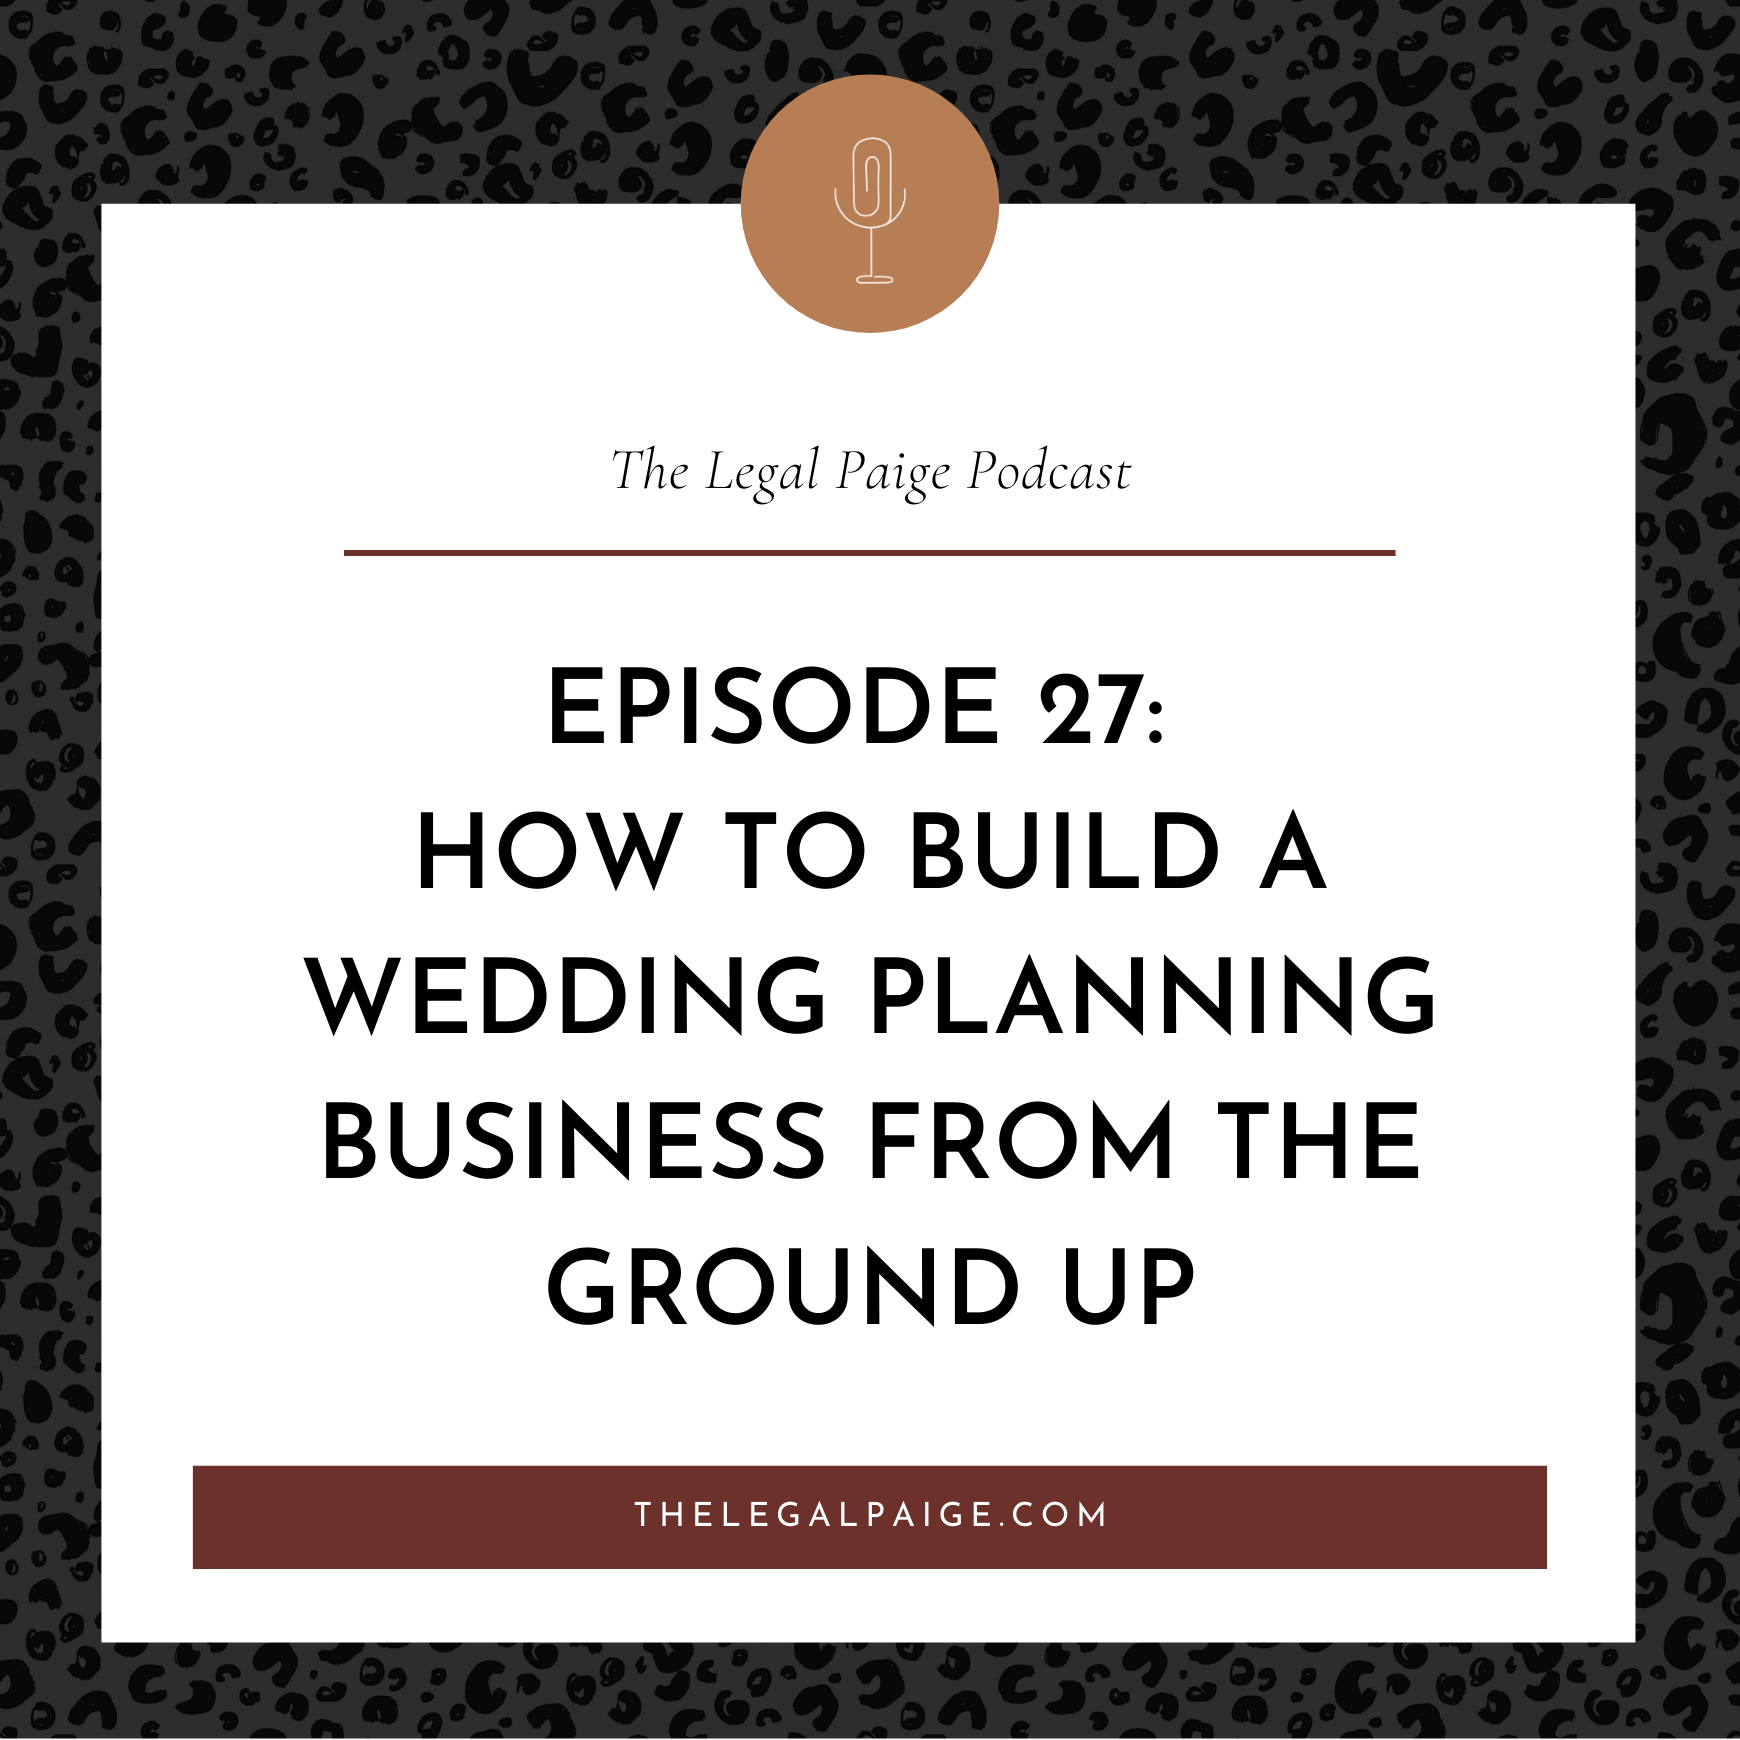 Episode 27: How to build a Wedding Planning Business from the Ground Up